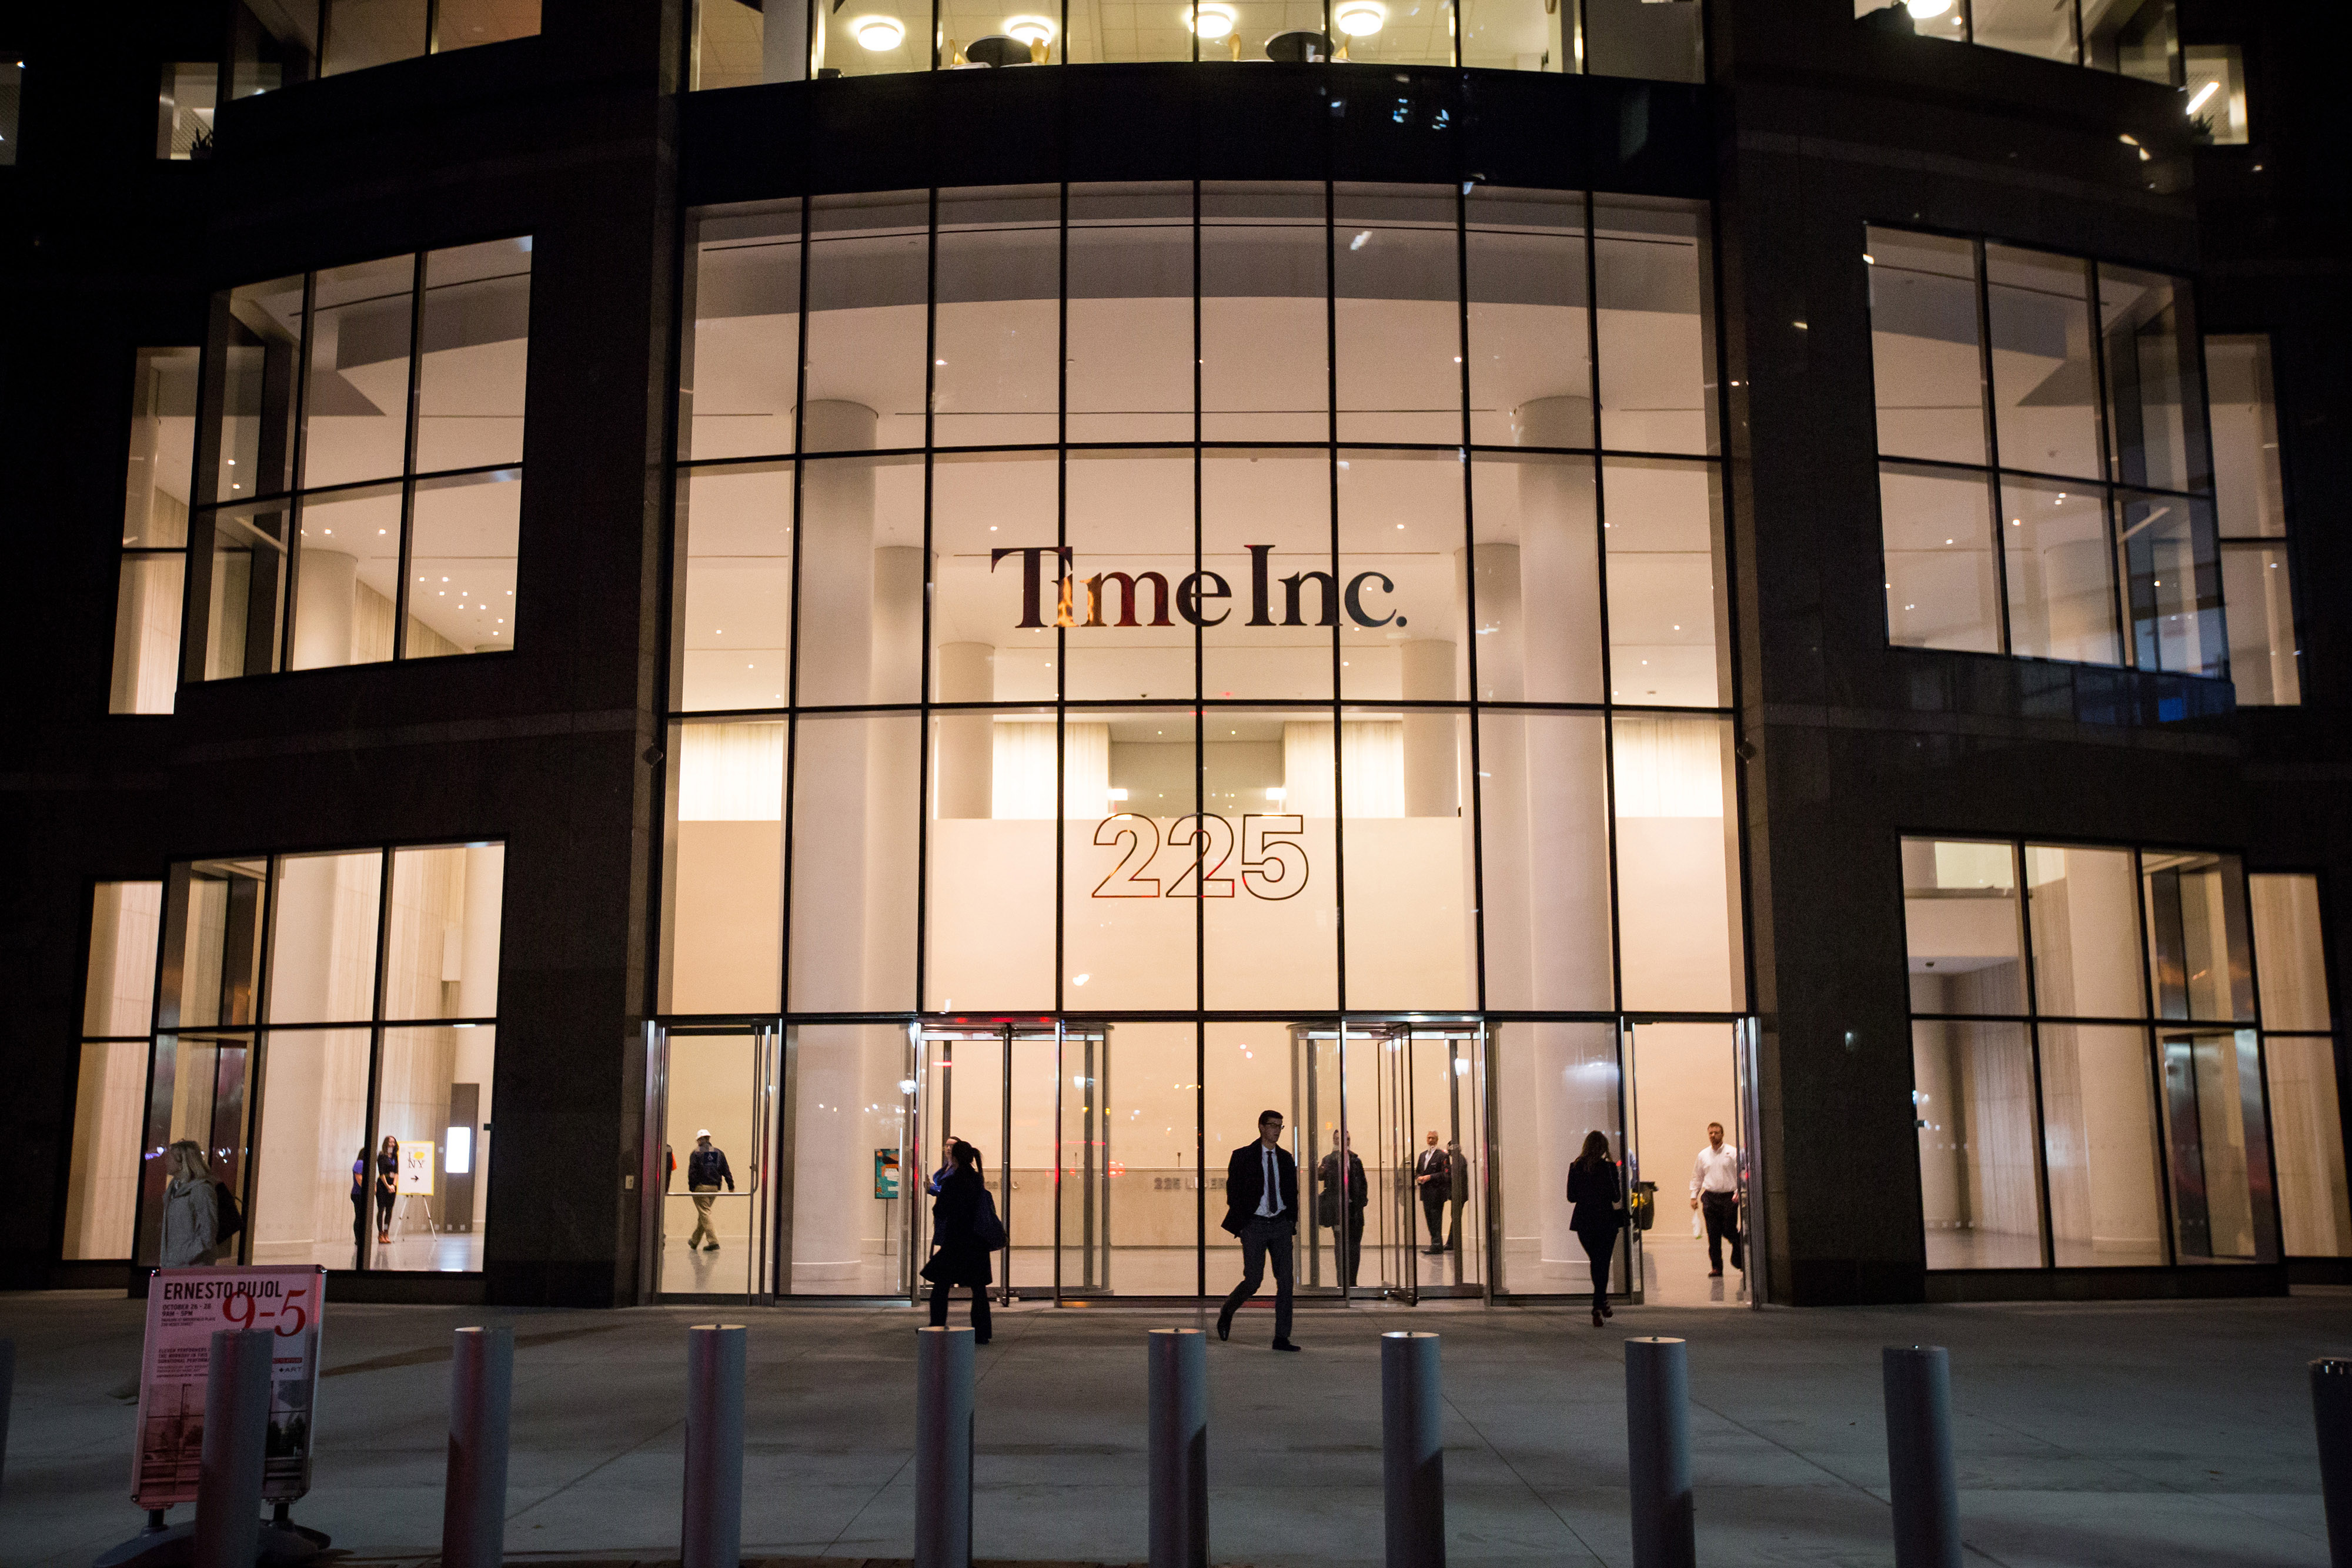 Pedestrians walk past the new headquarters of Time Inc. in New York, N.Y, on Tuesday, Oct. 27, 2015.